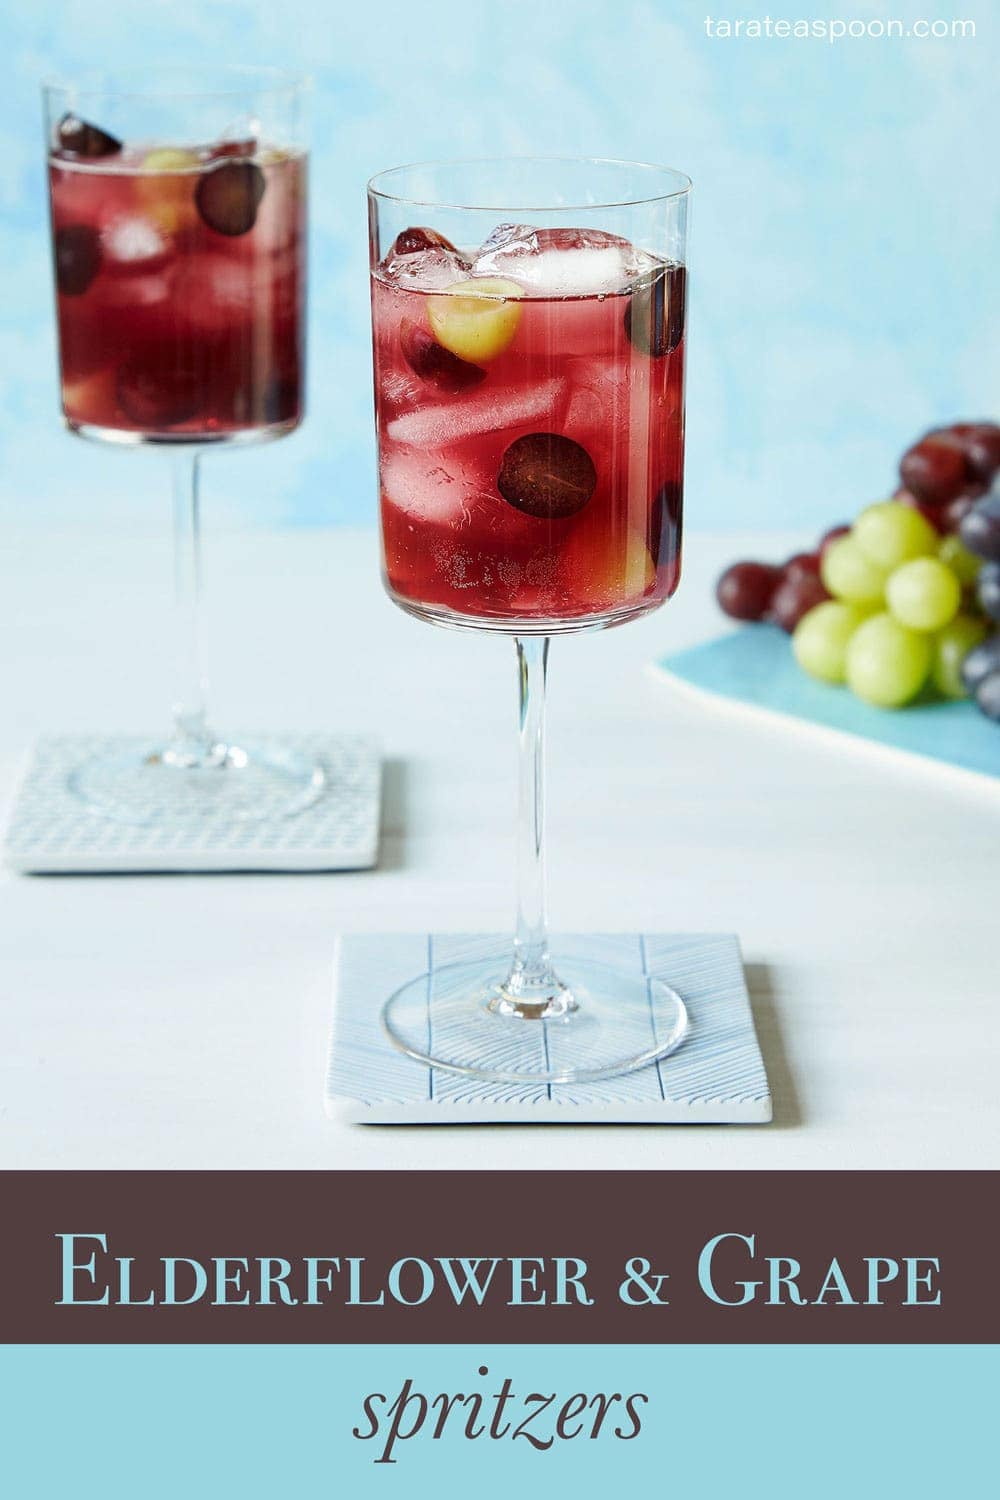 Elderflower and grape mocktail